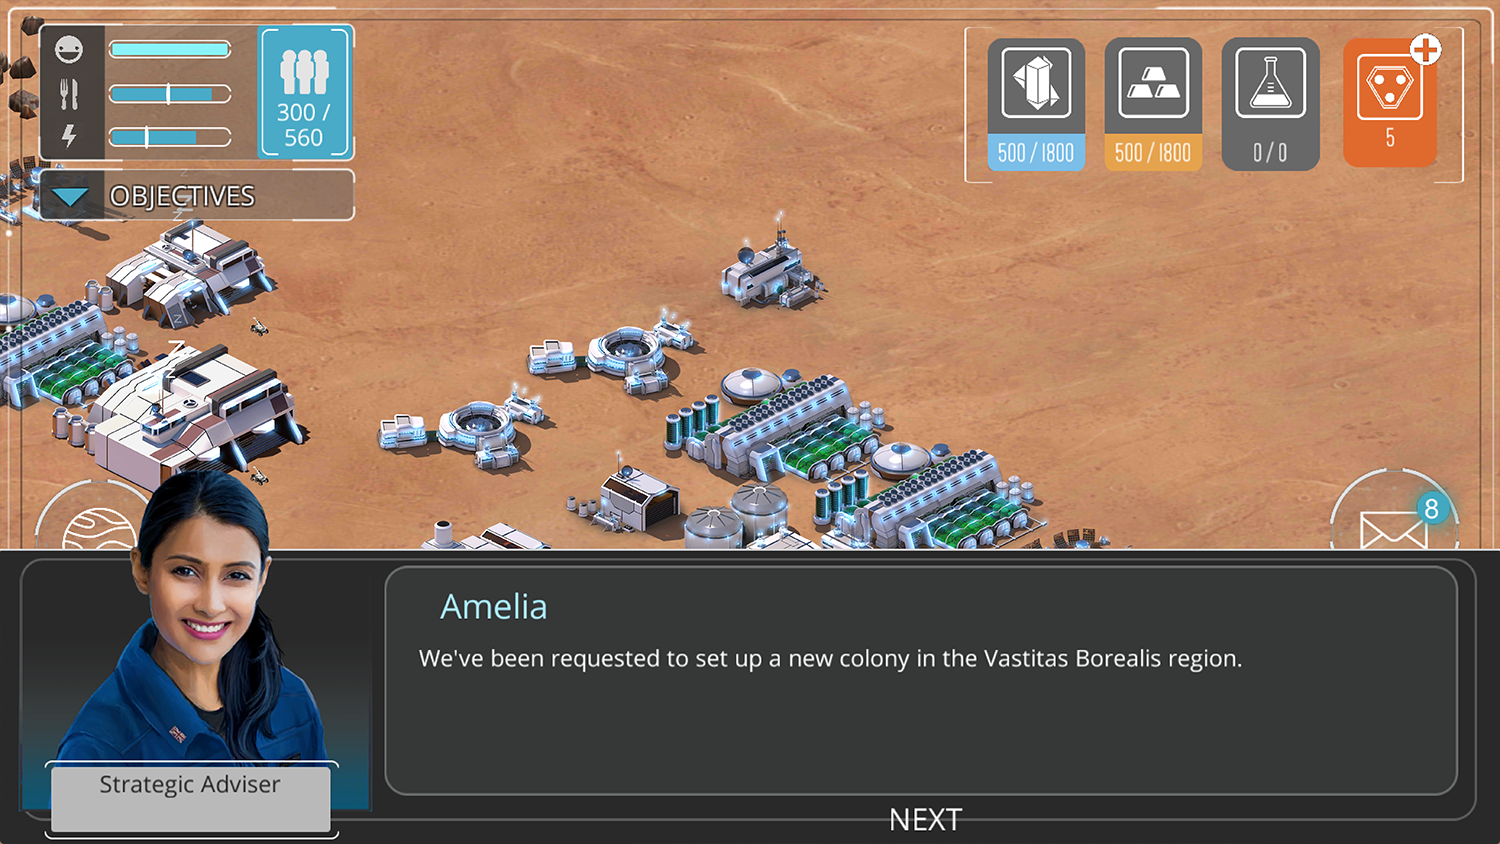 Screenshot of Specialist dialogue box prompting user to action.